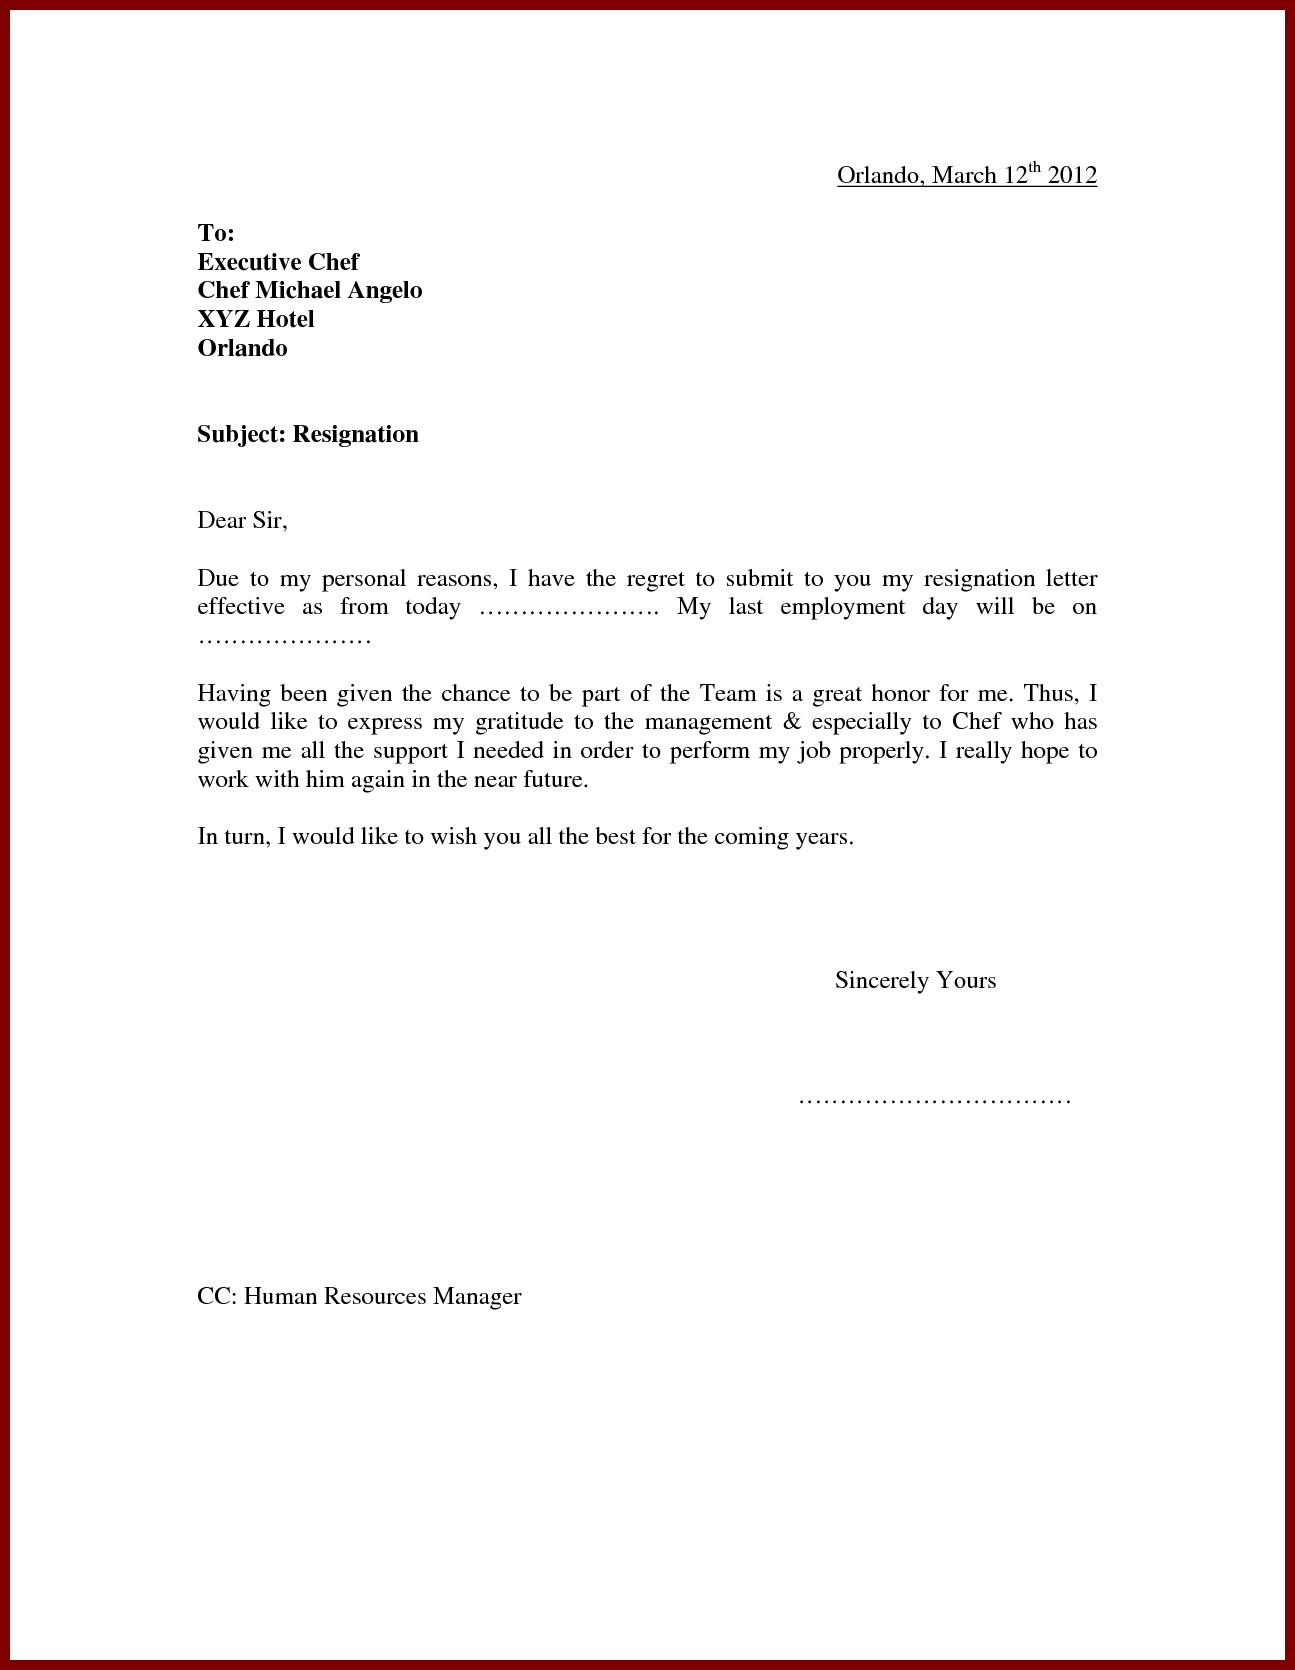 samples-of-resignation-letters-for-personal-reasons-86650939.png ...